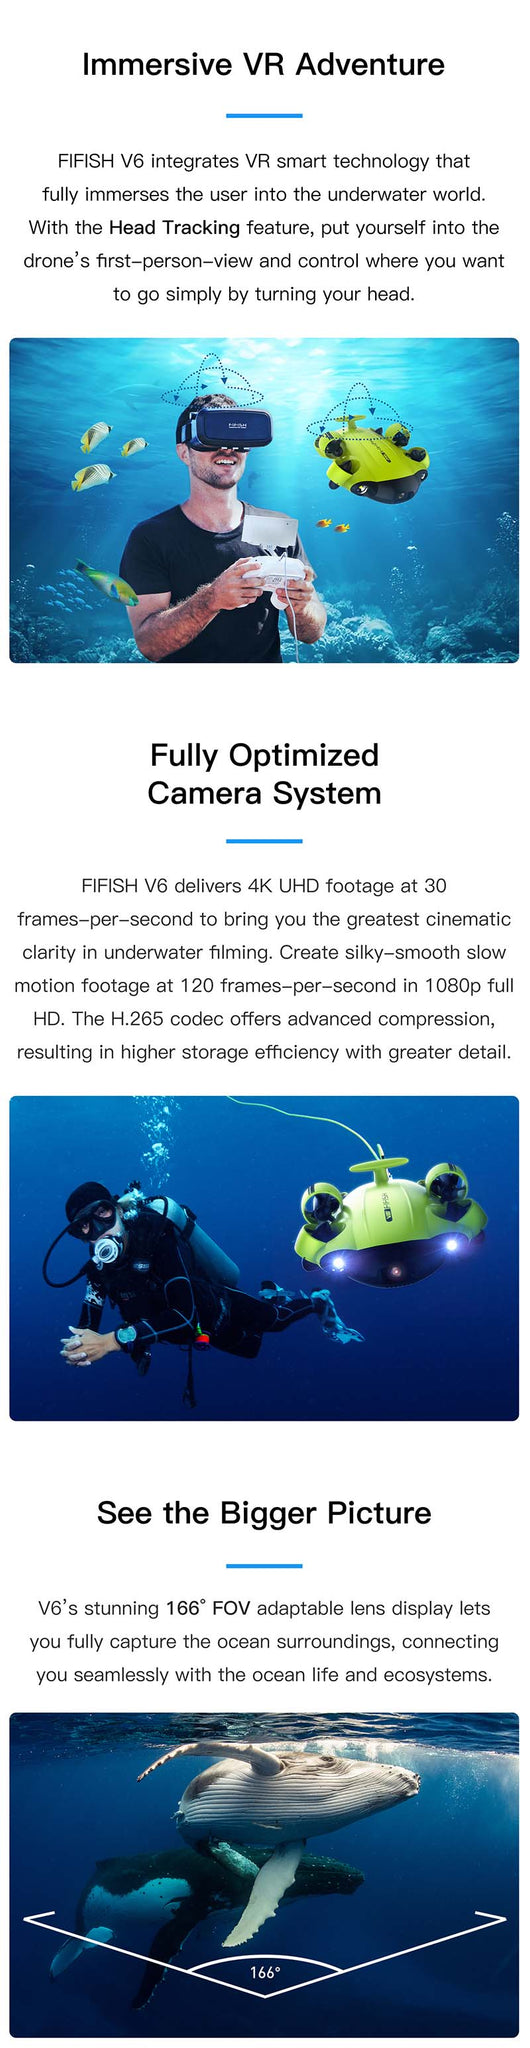 fifish underwater drone instructions